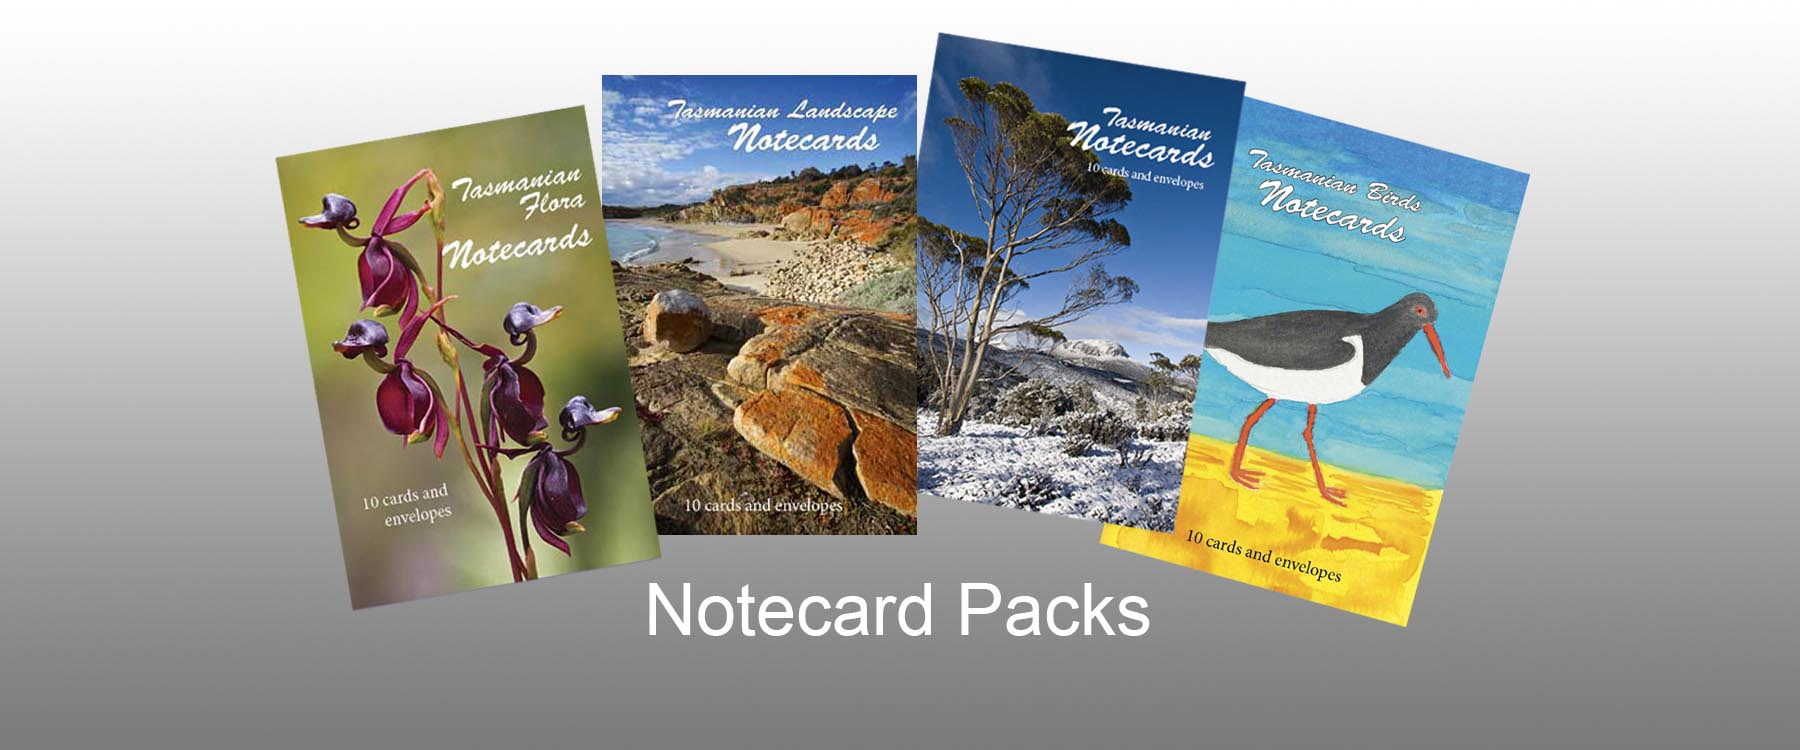 4 Notecard Packs with background